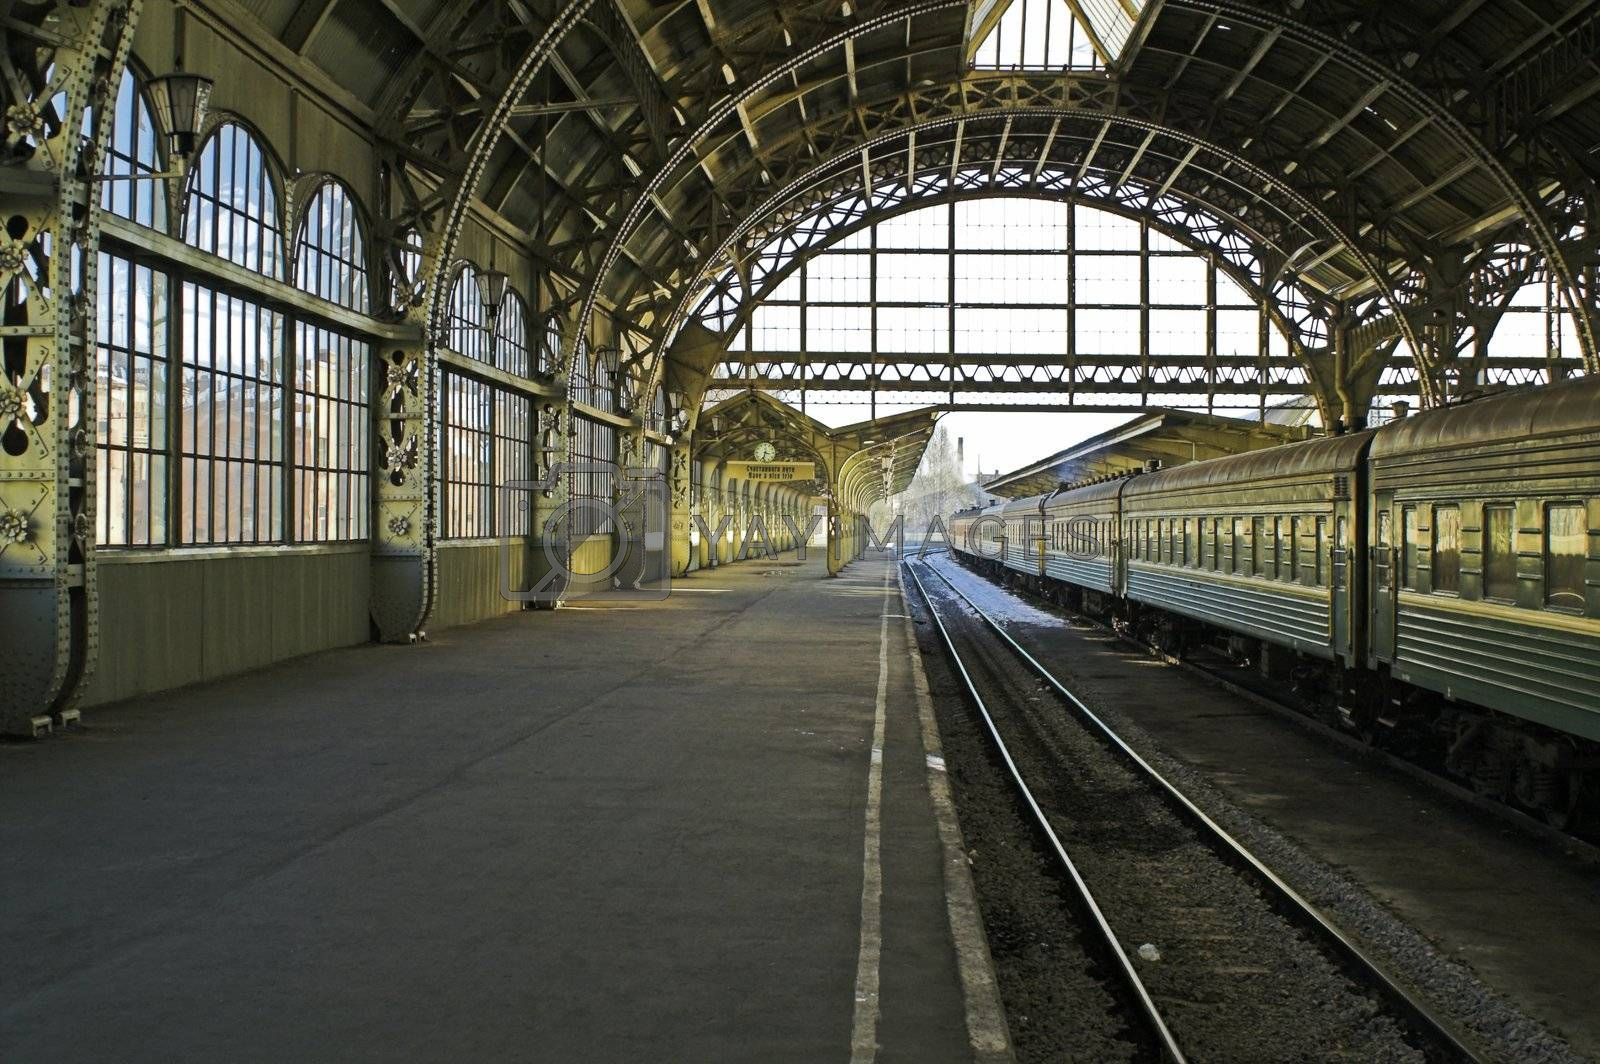 Railroad station platform by simfan